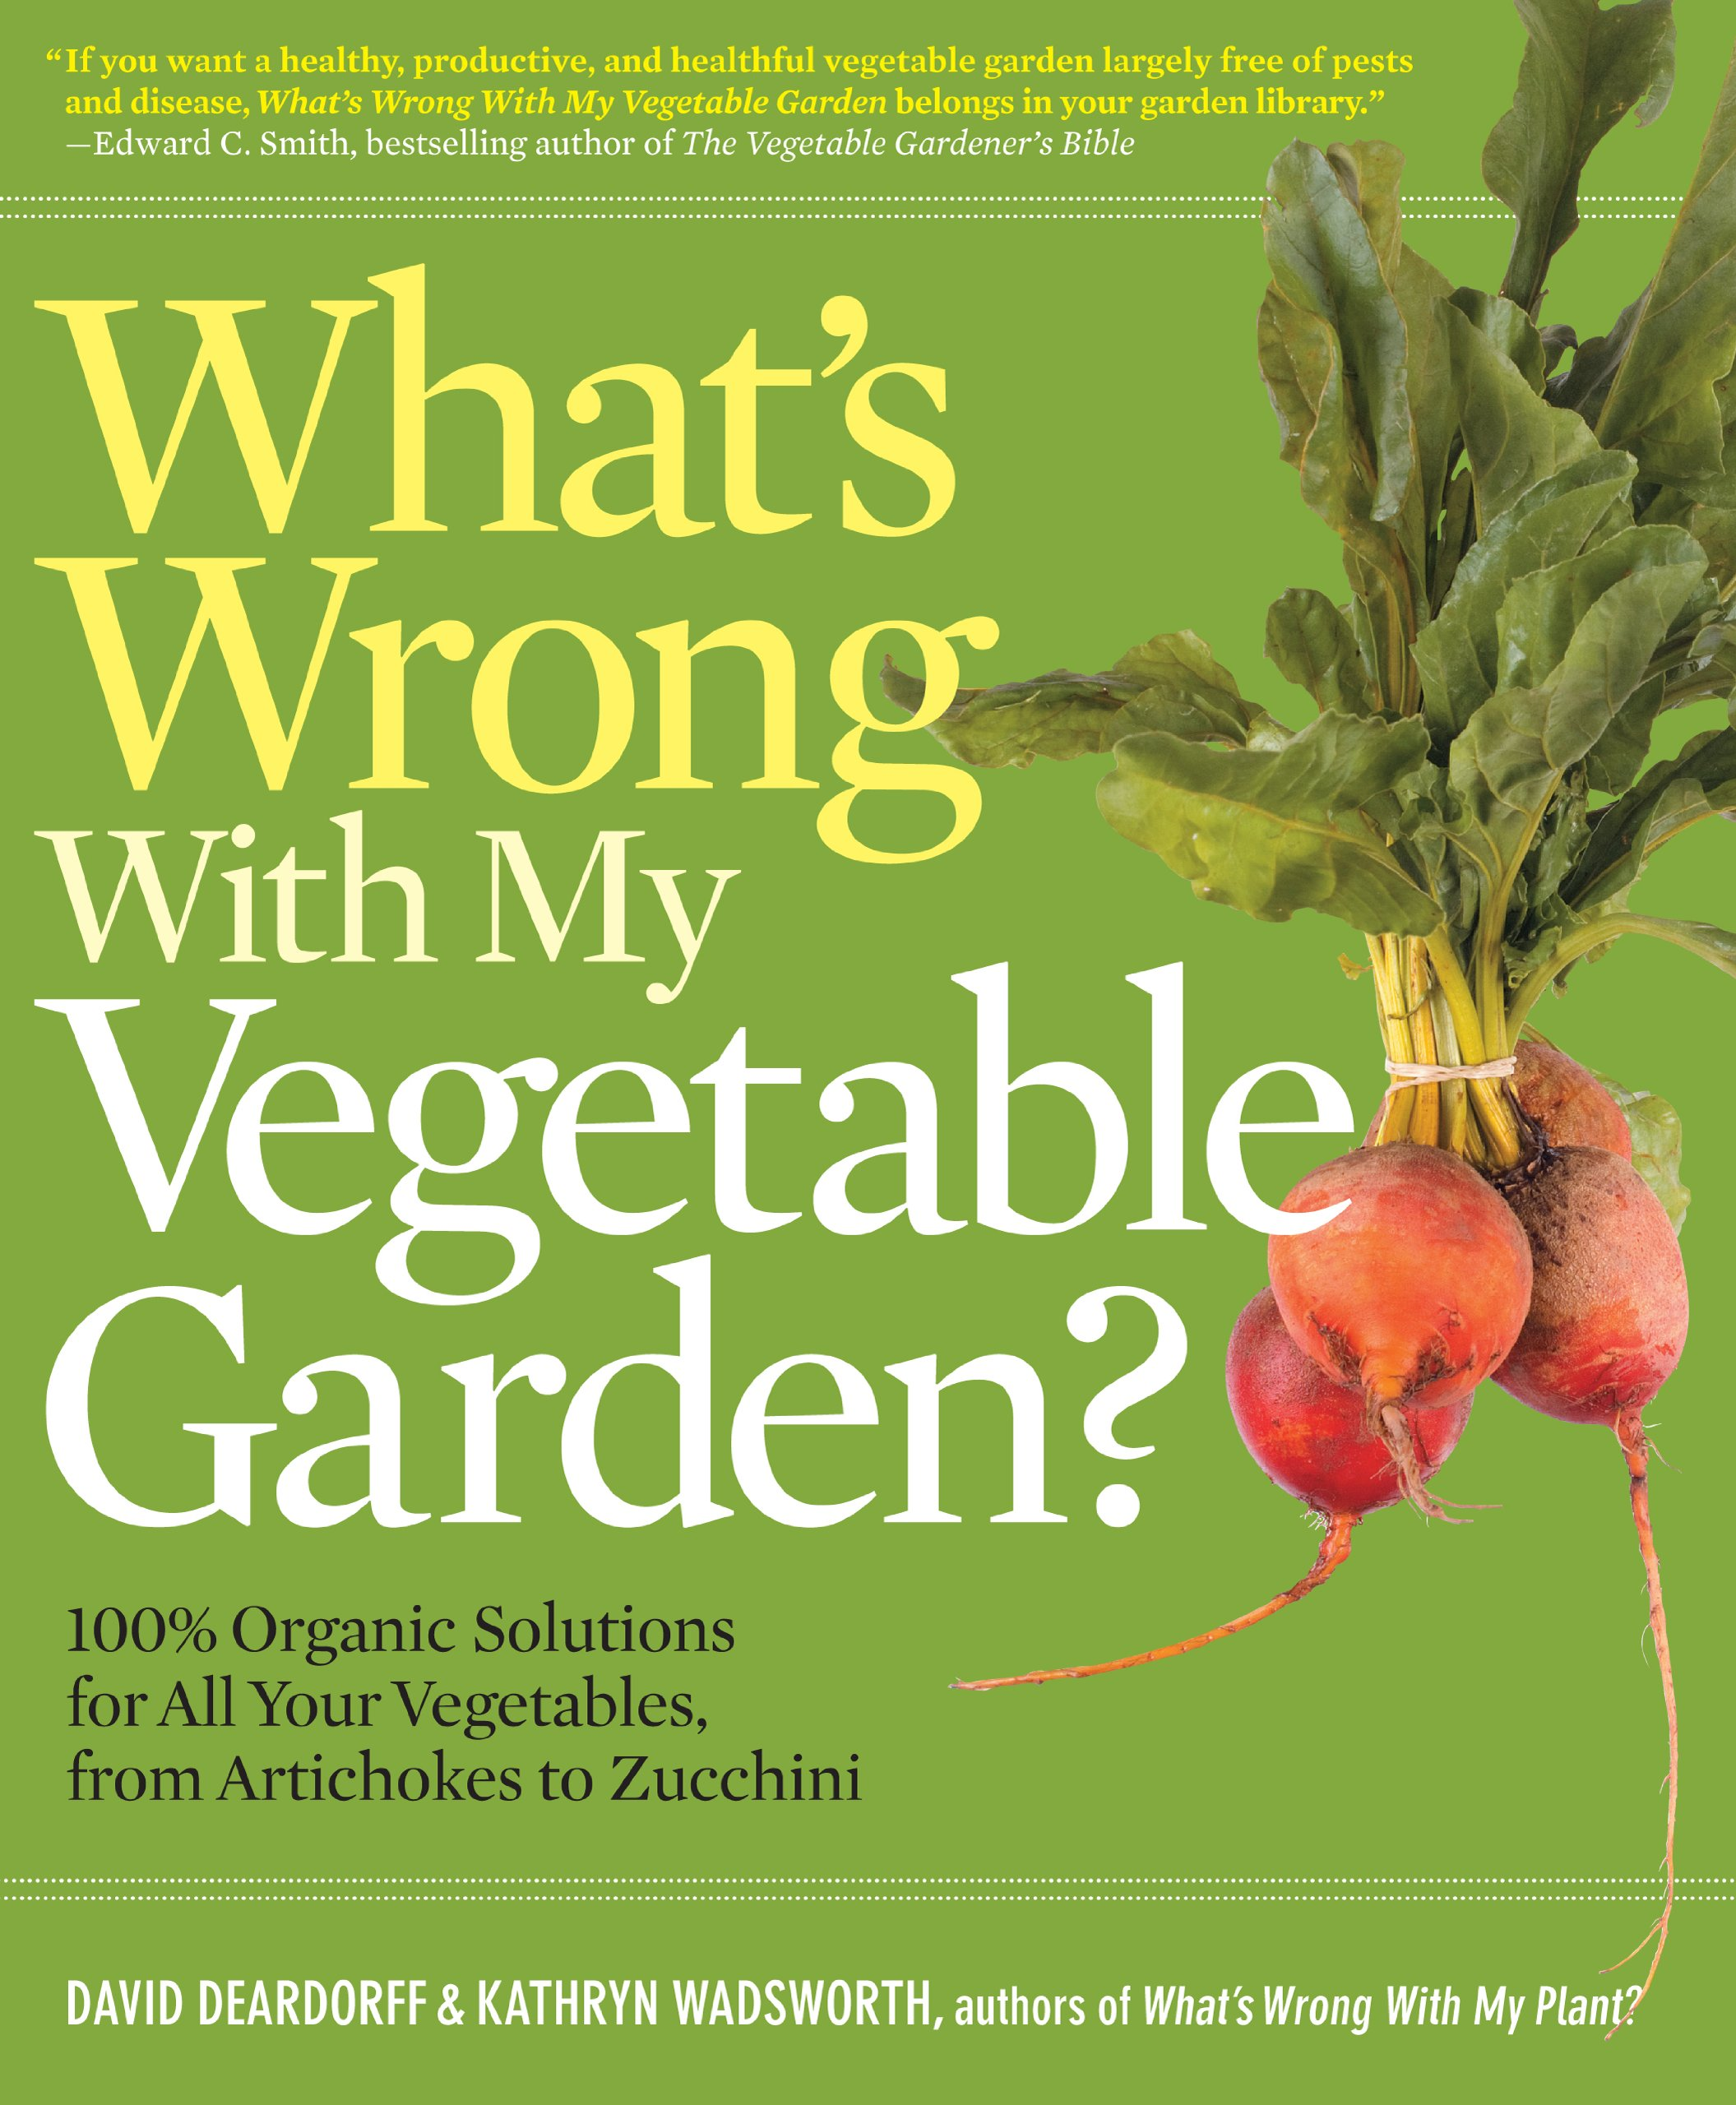 What's Wrong With My Vegetable Garden?: 100% Organic Solutions for All Your  Vegetables, from Artichokes to Zucchini (What's Wrong Series): David  Deardorff, ...